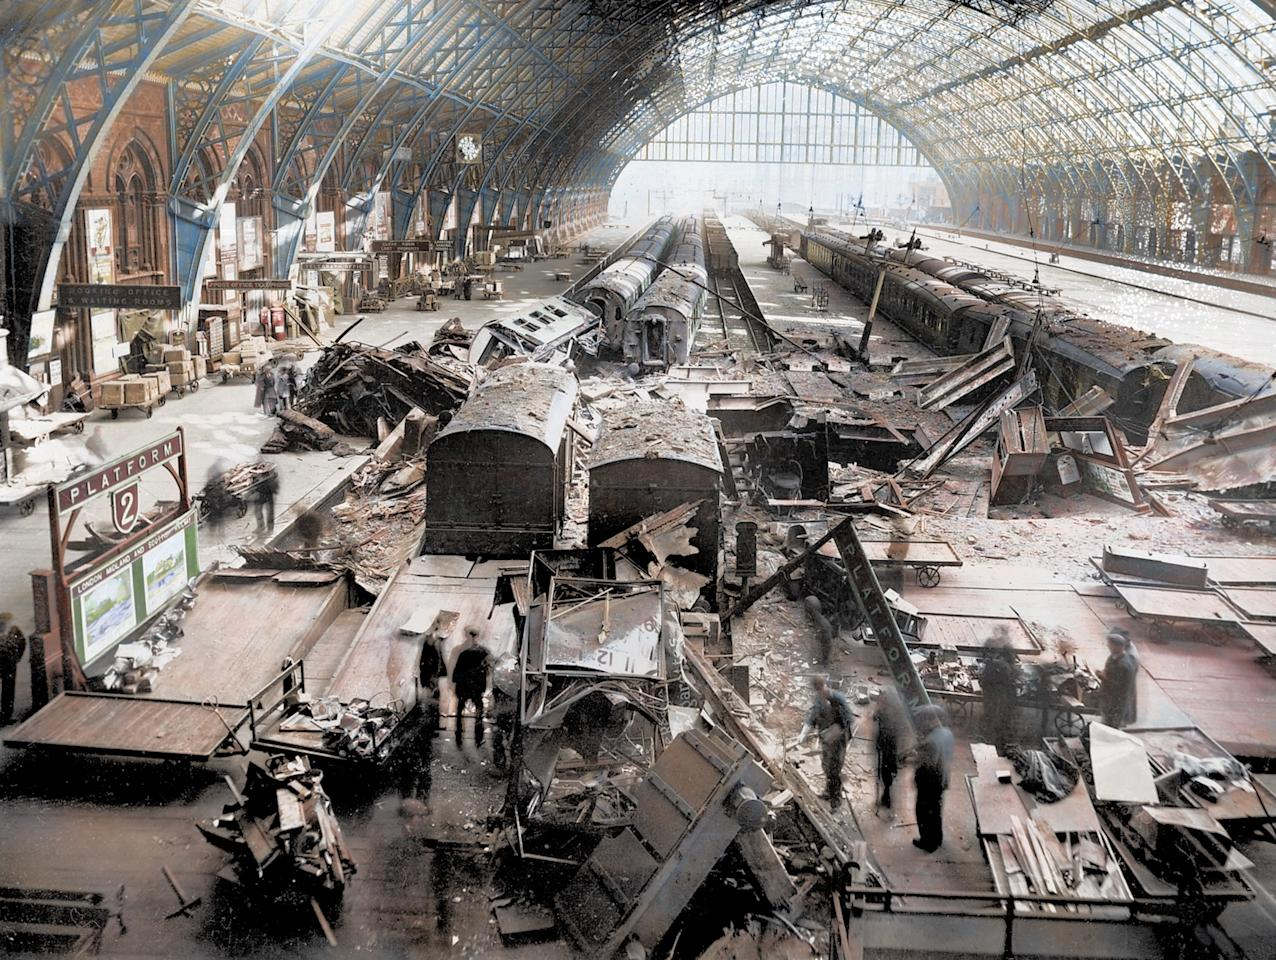 <p>St Pancras station was bombed numerous times,<br /> causing severe damage (Royston Leonard/mediadrumworld.com) </p>